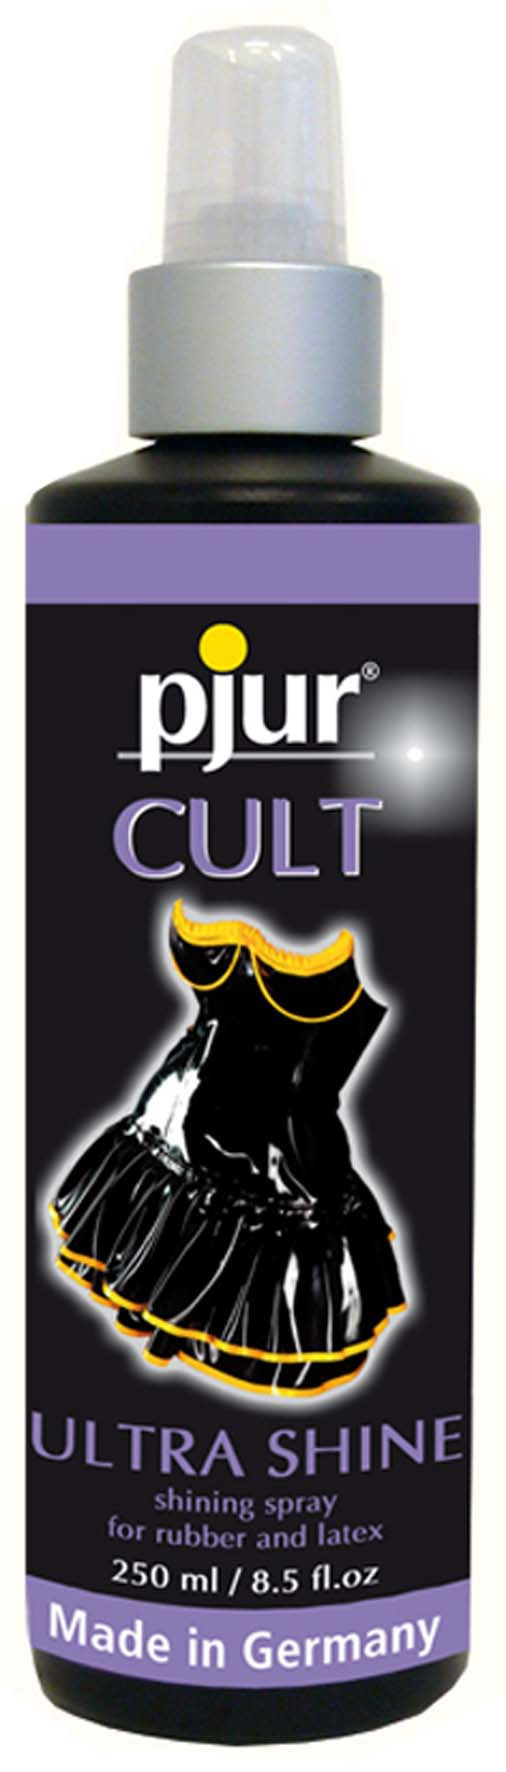 pjur CULT ULTRA Shining Spray 250ml